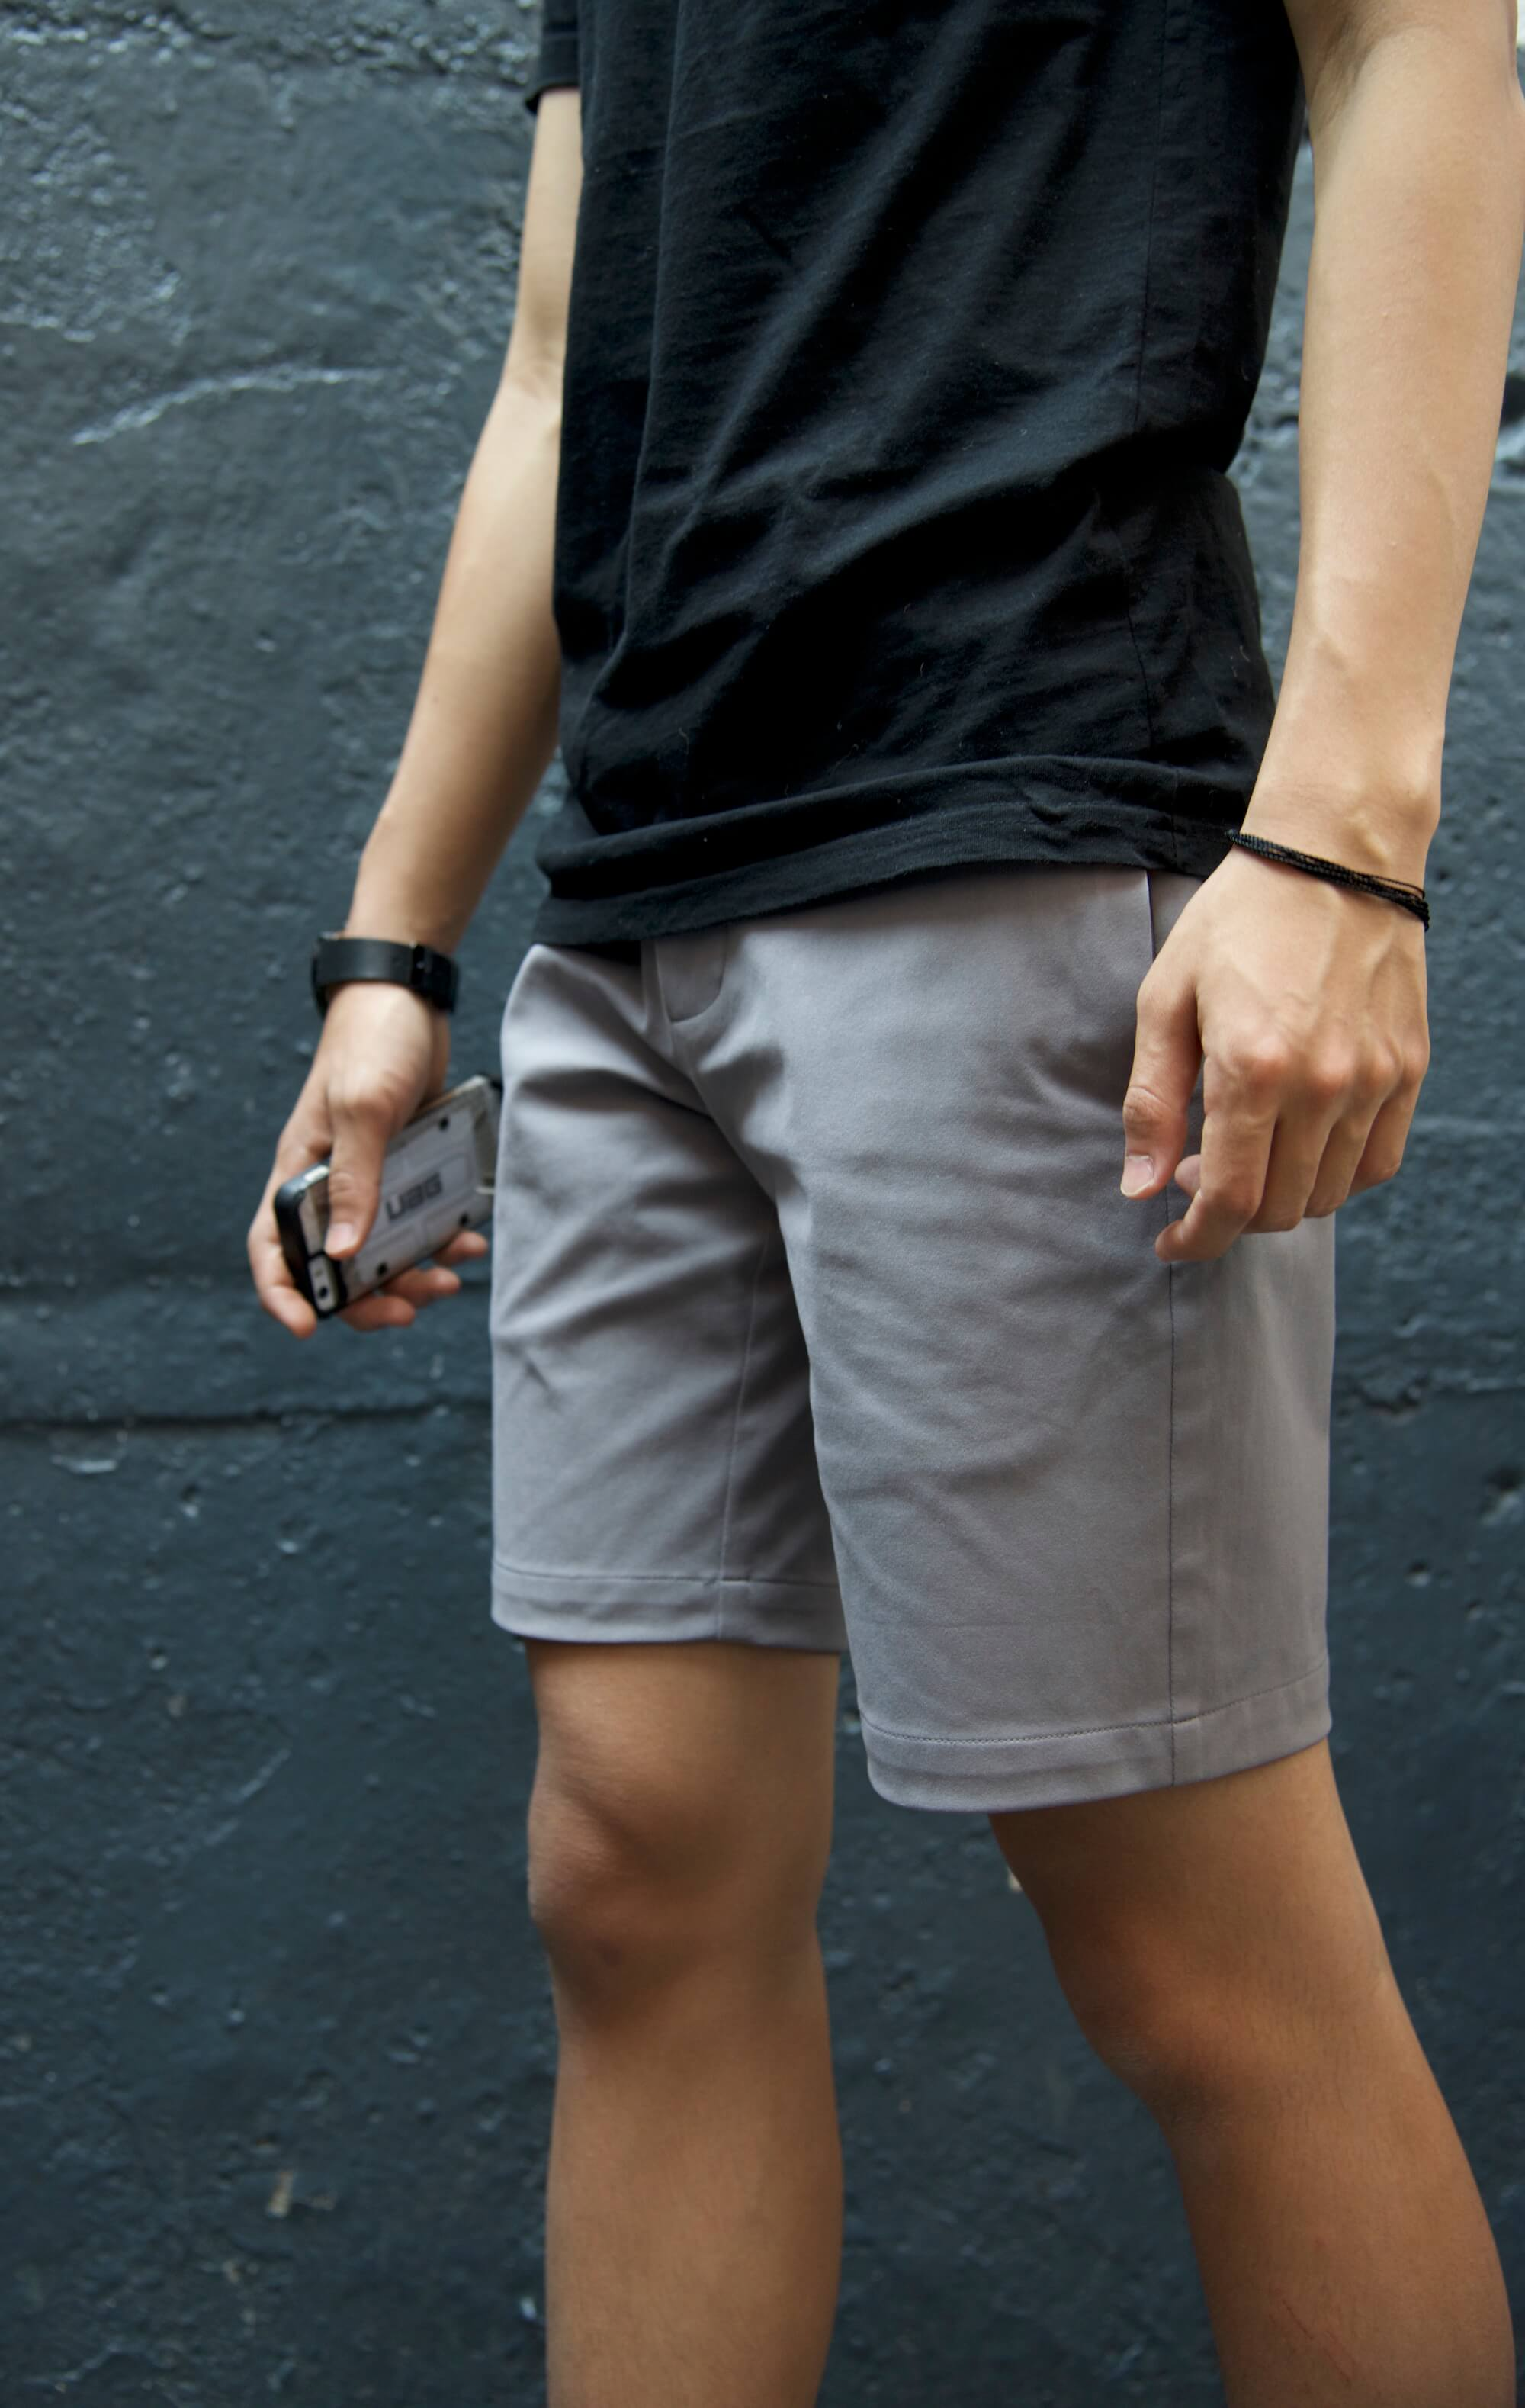 Ministry of Supply Aviator shorts review